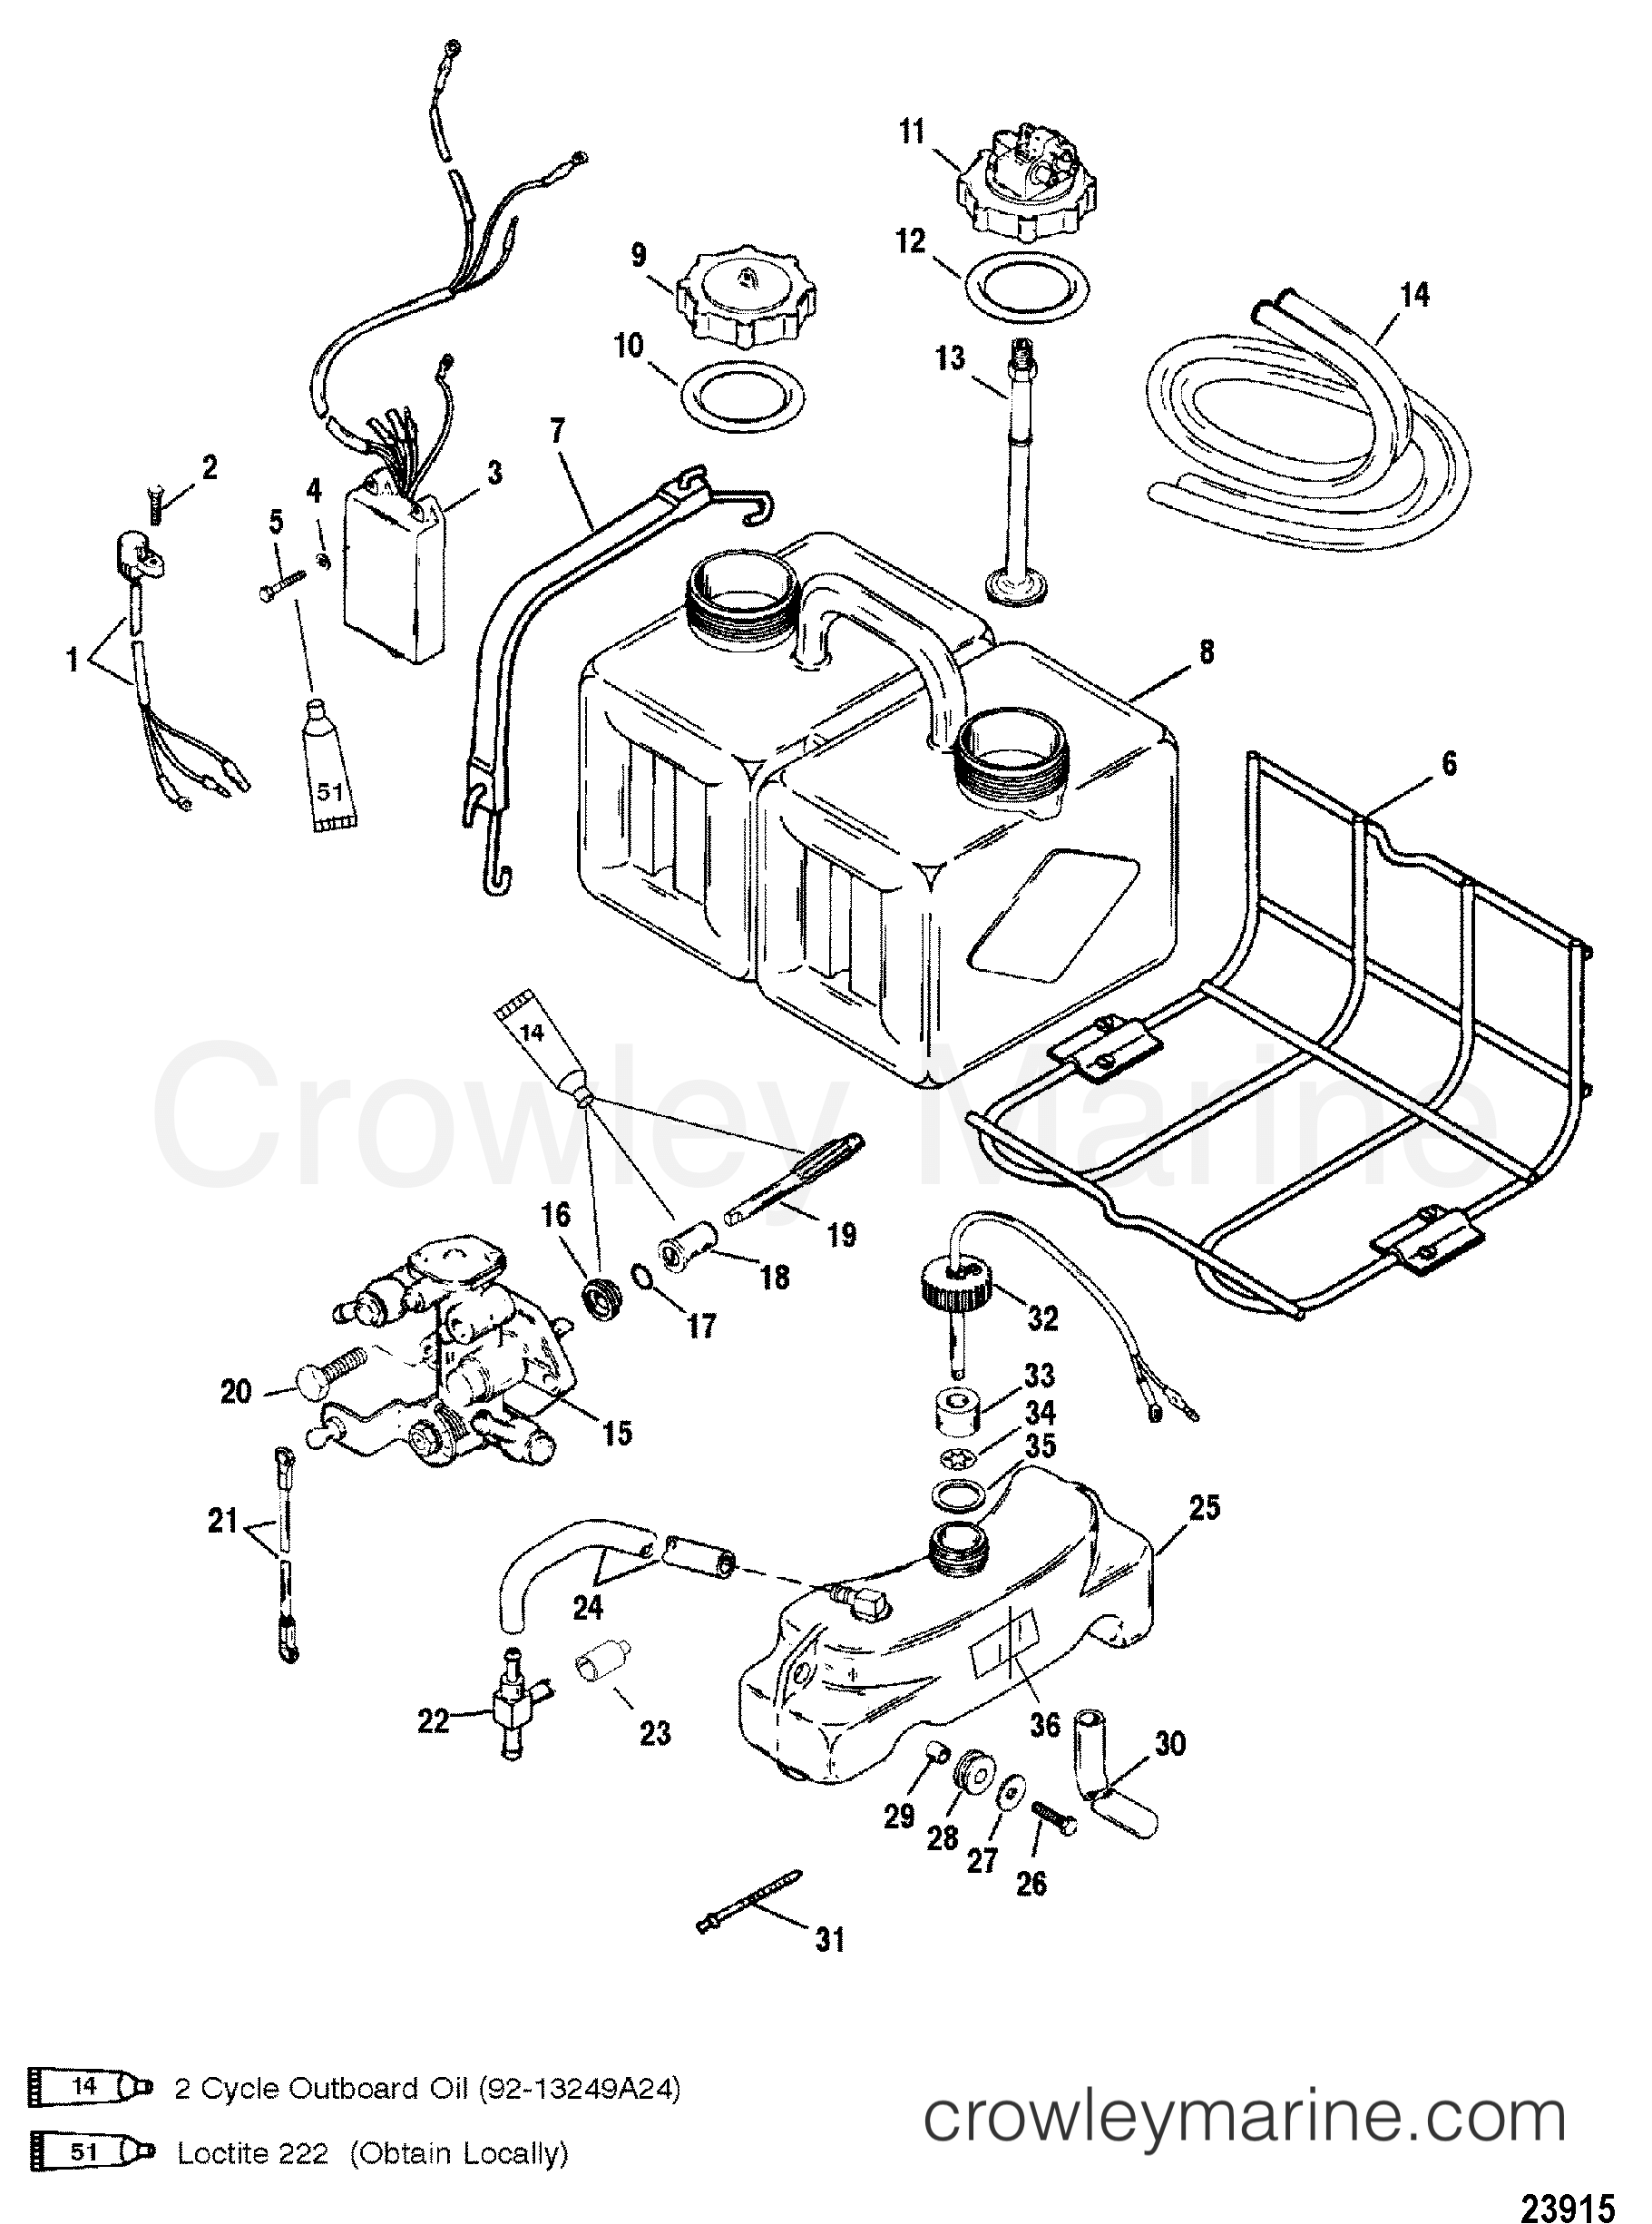 chrysler outboard parts diagram  chrysler  auto parts